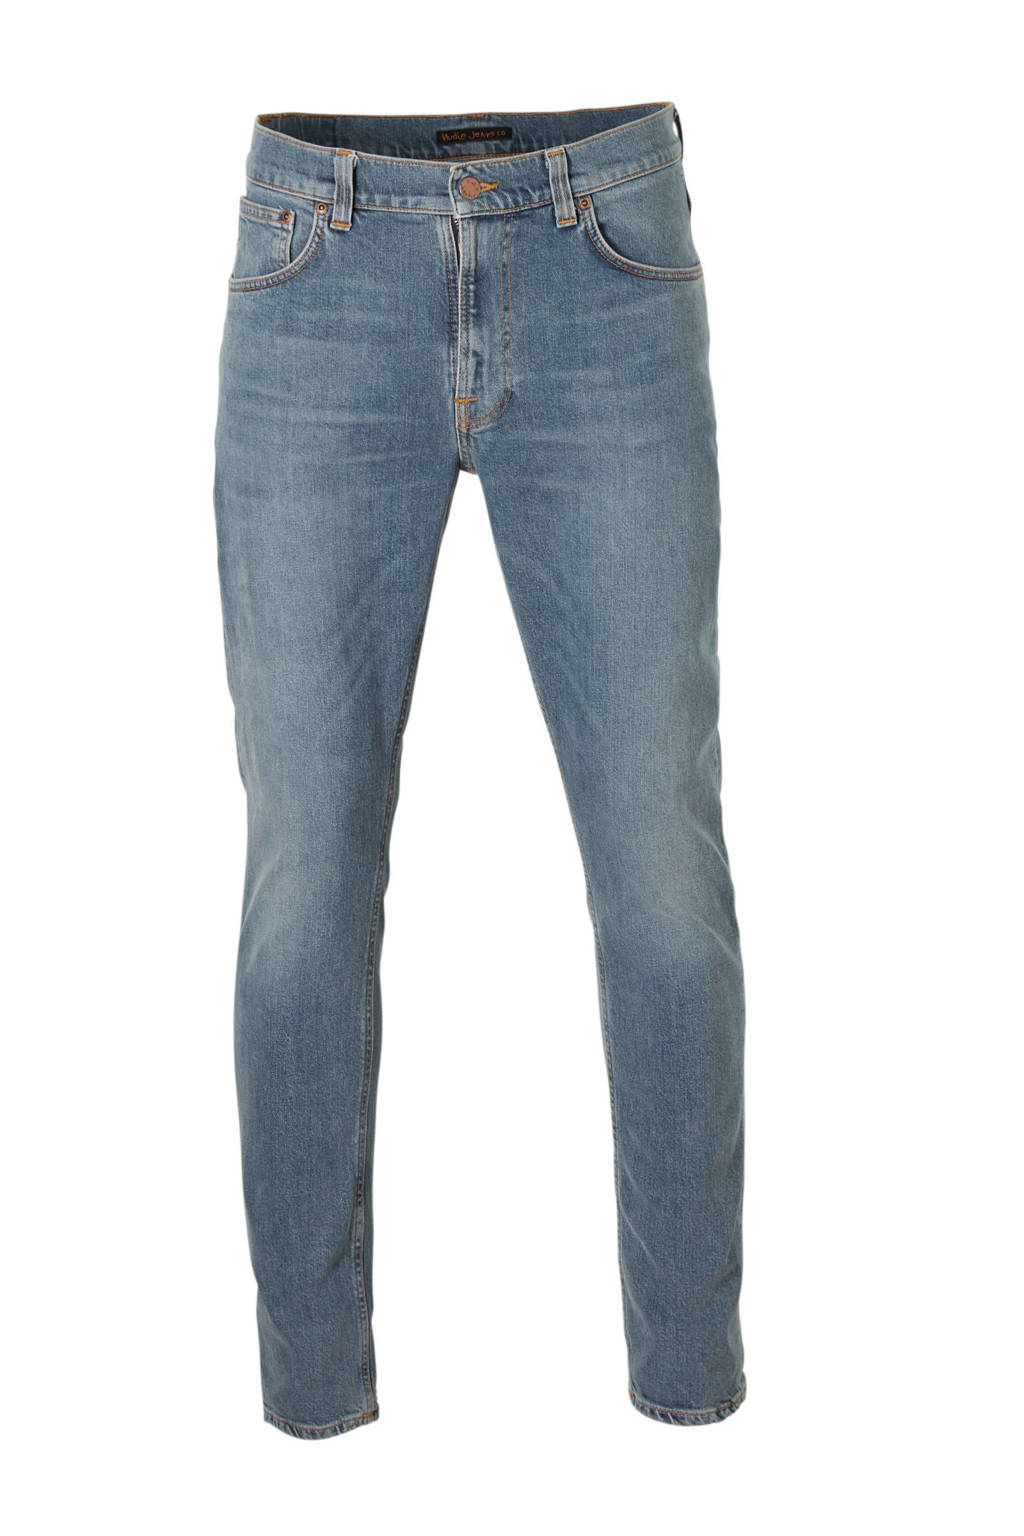 Nudie Jeans  regular Lean Dean jeans, Light denim